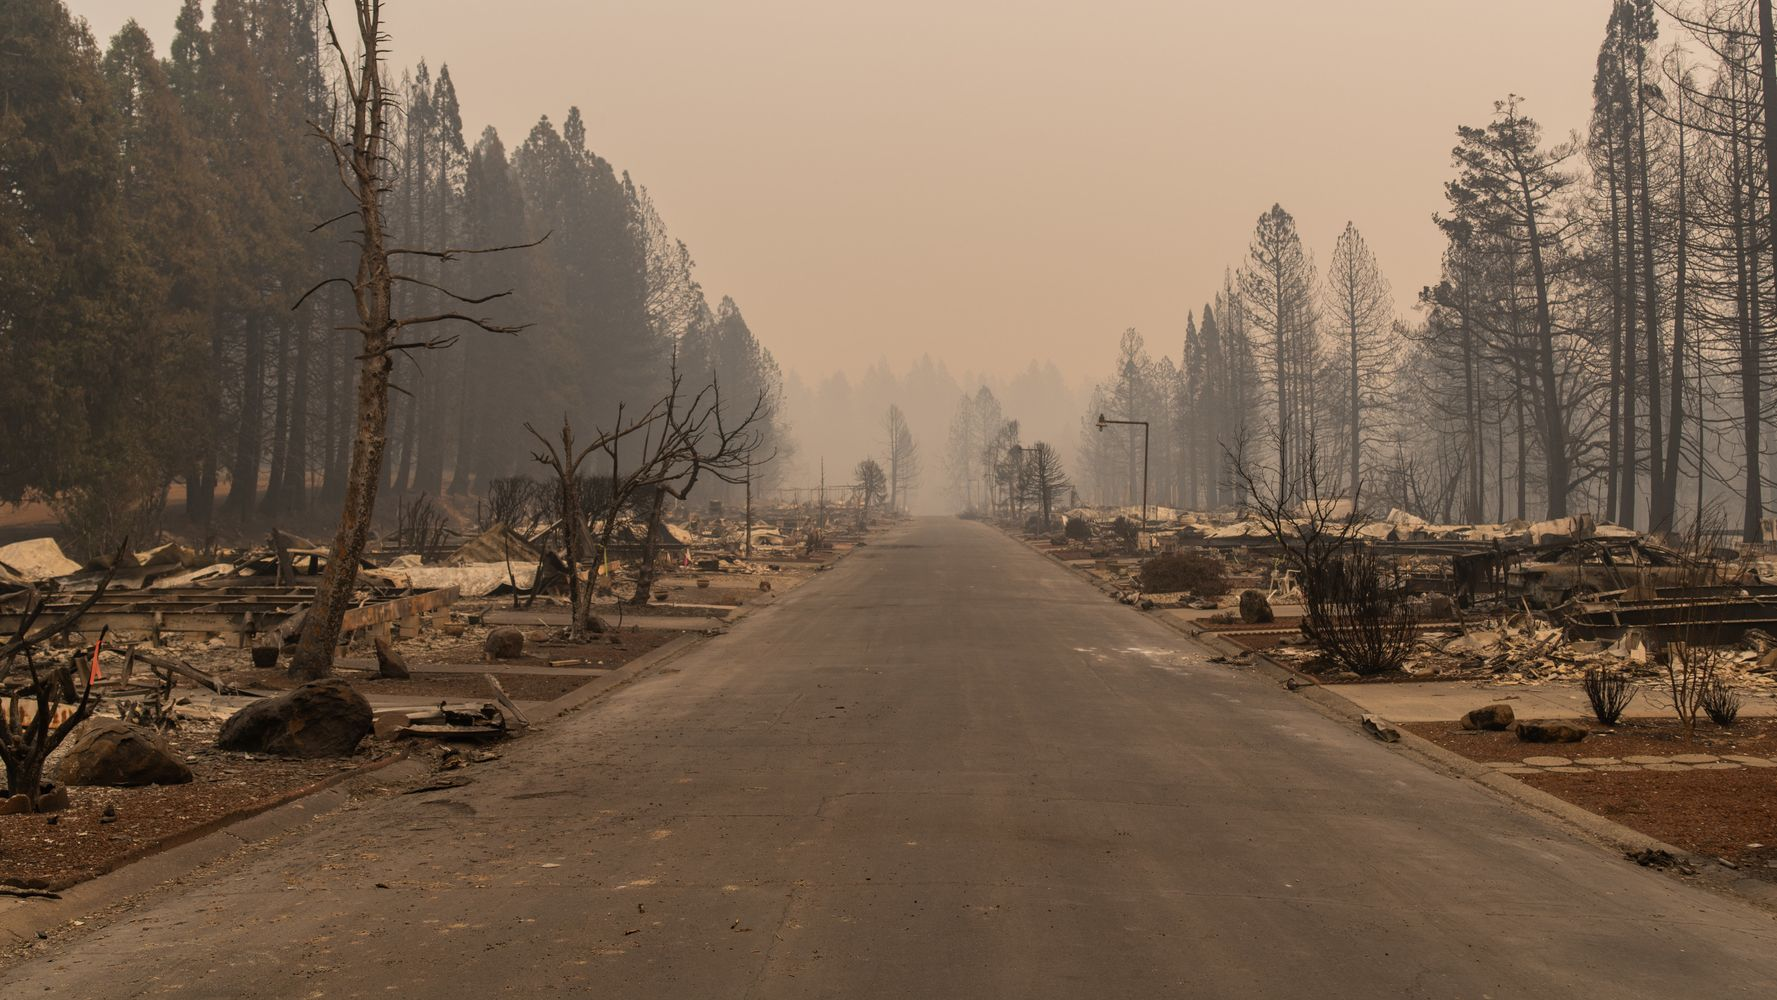 3 Weeks After The Fire, One Paradise Property Owner Is Still